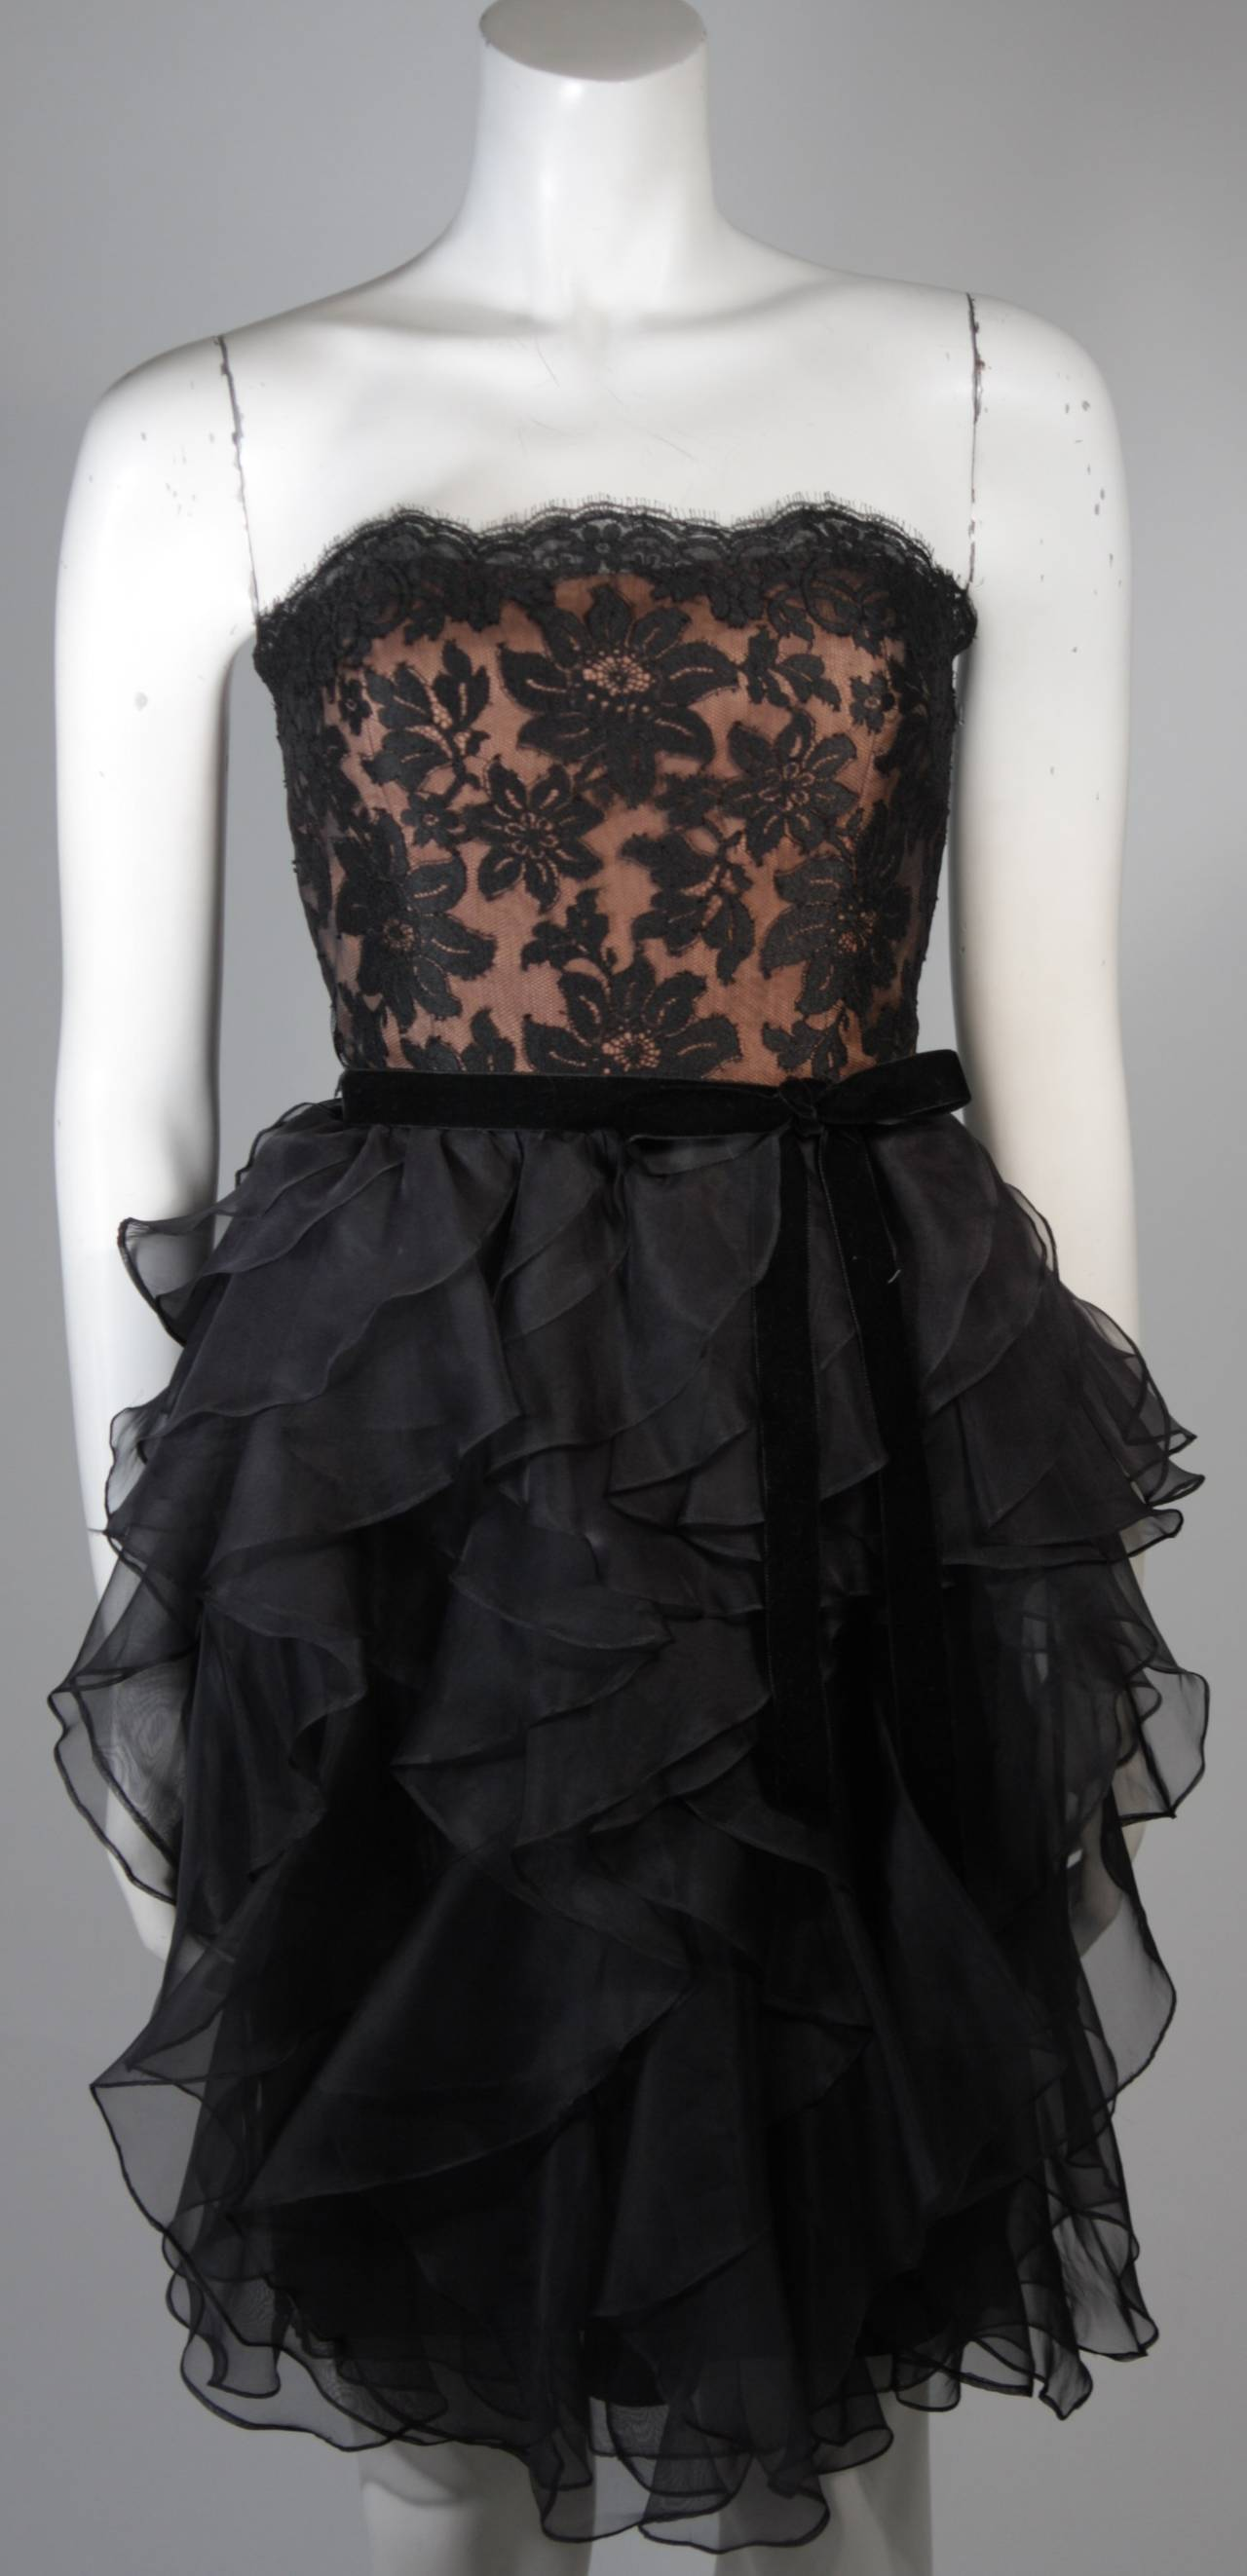 This Jill Richards cocktail dress is composed of black lace and features a lovely layered black silk skirt, comes with velvet bow. There is a center back zipper. In excellent condition.